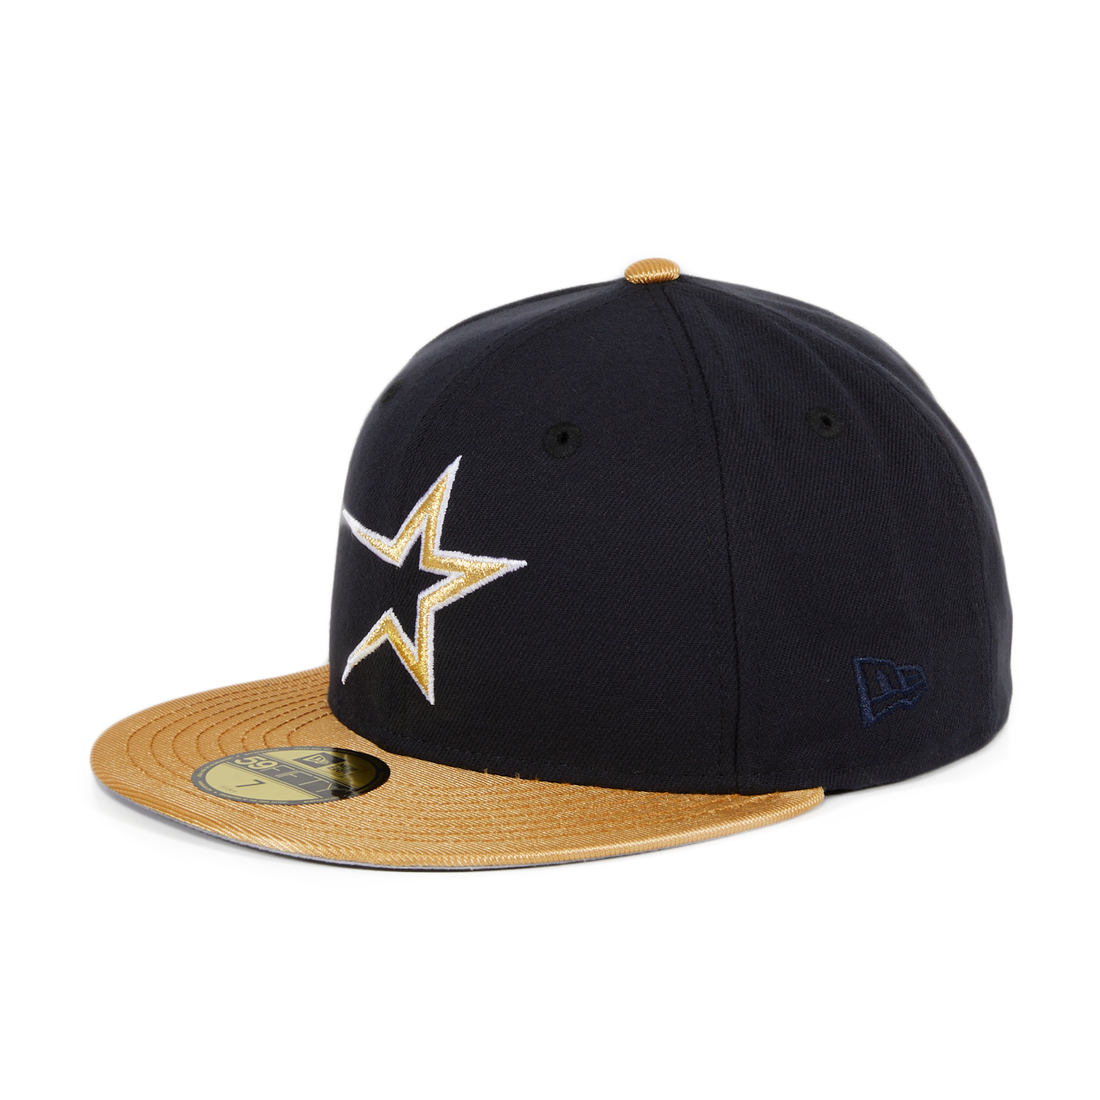 Exclusive New Era 59Fifty Houston Astros 1997 Hat - 2T Navy ... be7f28782